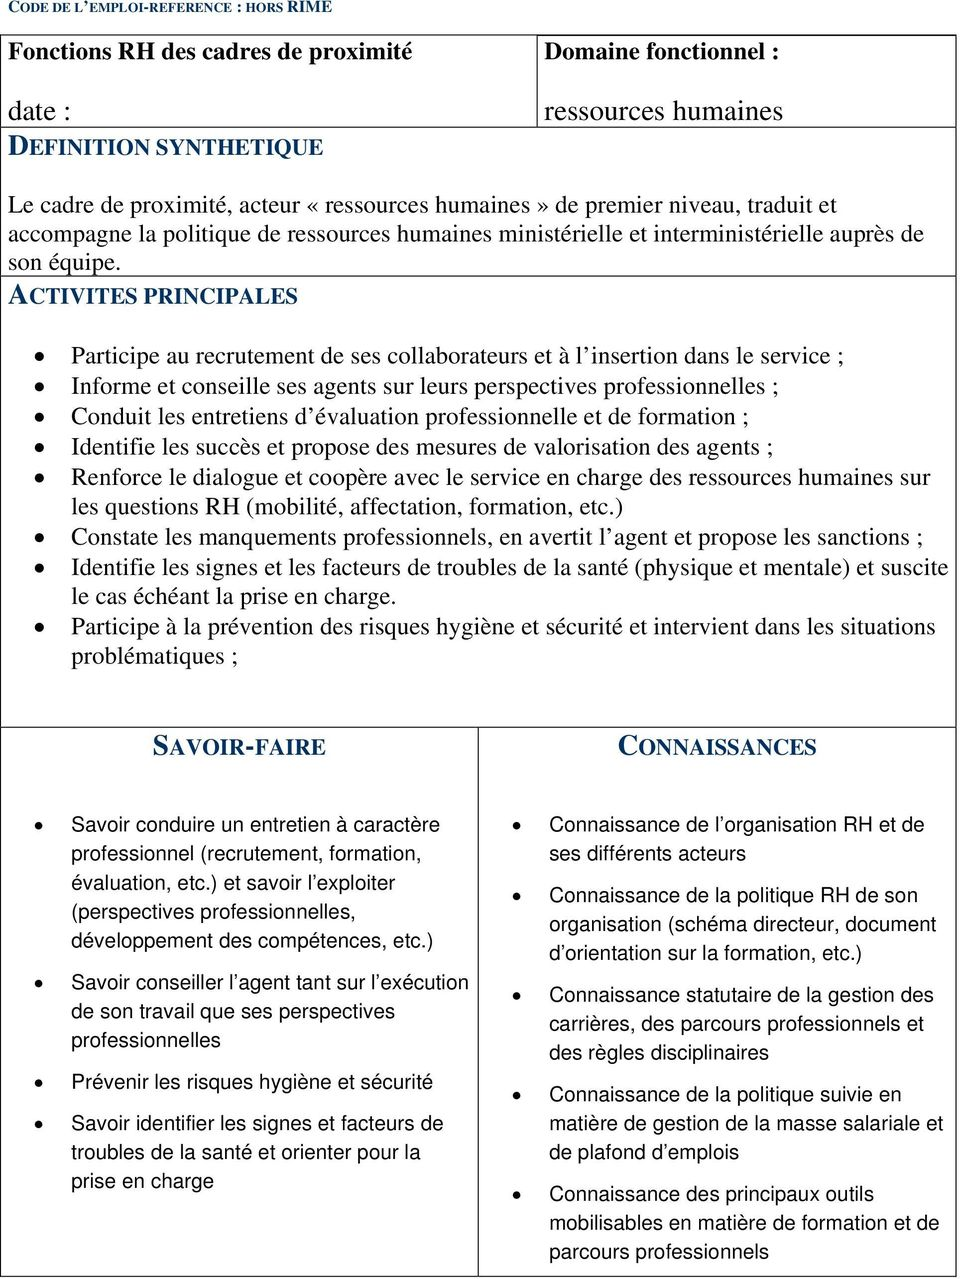 ACTIVITES PRINCIPALES Participe au recrutement de ses collaborateurs et à l insertion dans le service ; Informe et conseille ses agents sur leurs perspectives professionnelles ; Conduit les